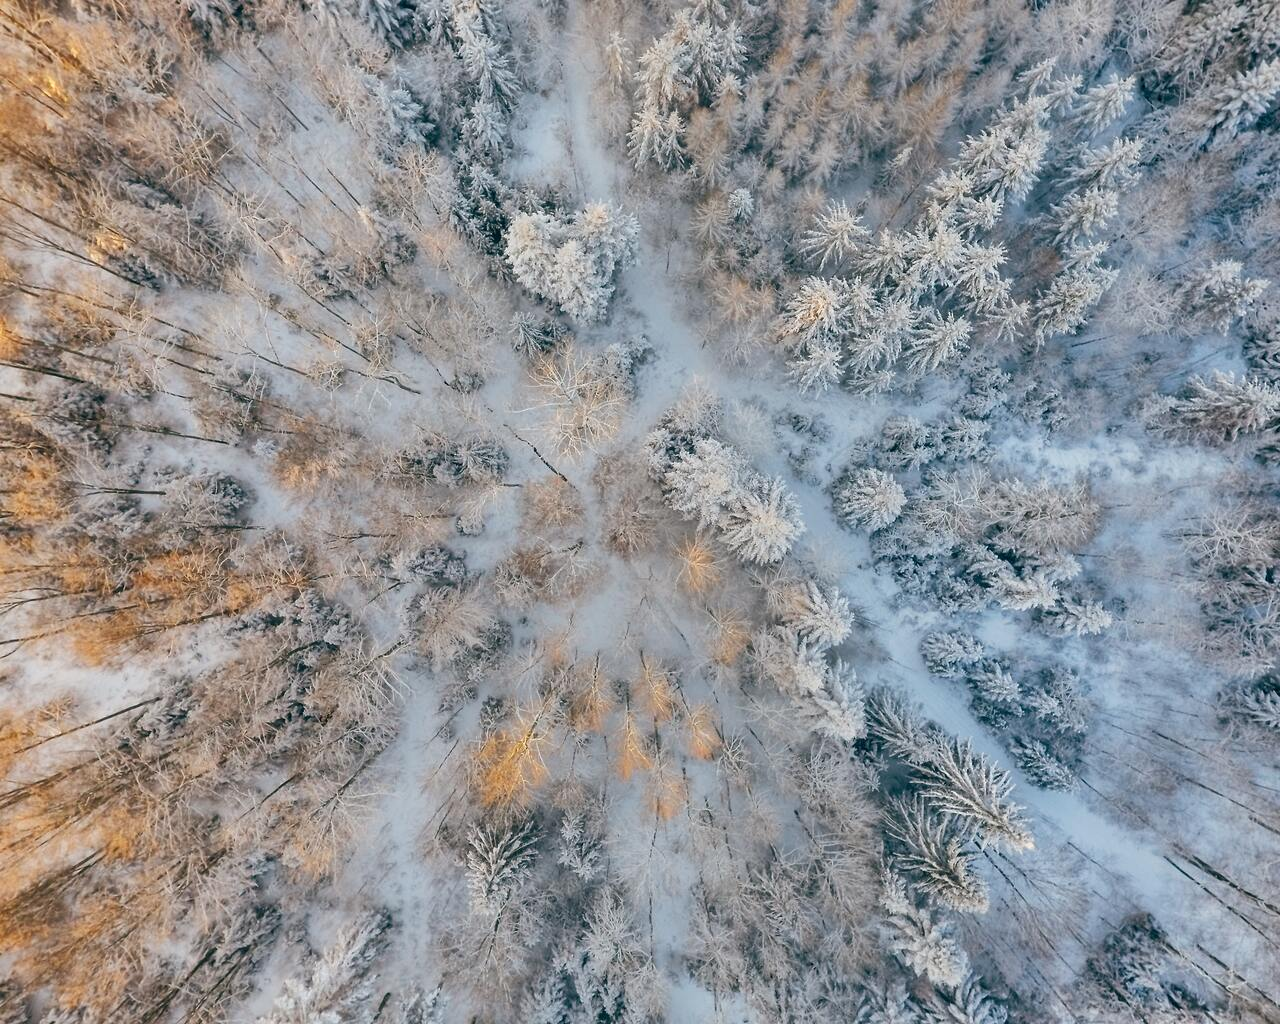 aerial-short-of-cold-forest-snow-trees-4k-7g.jpg